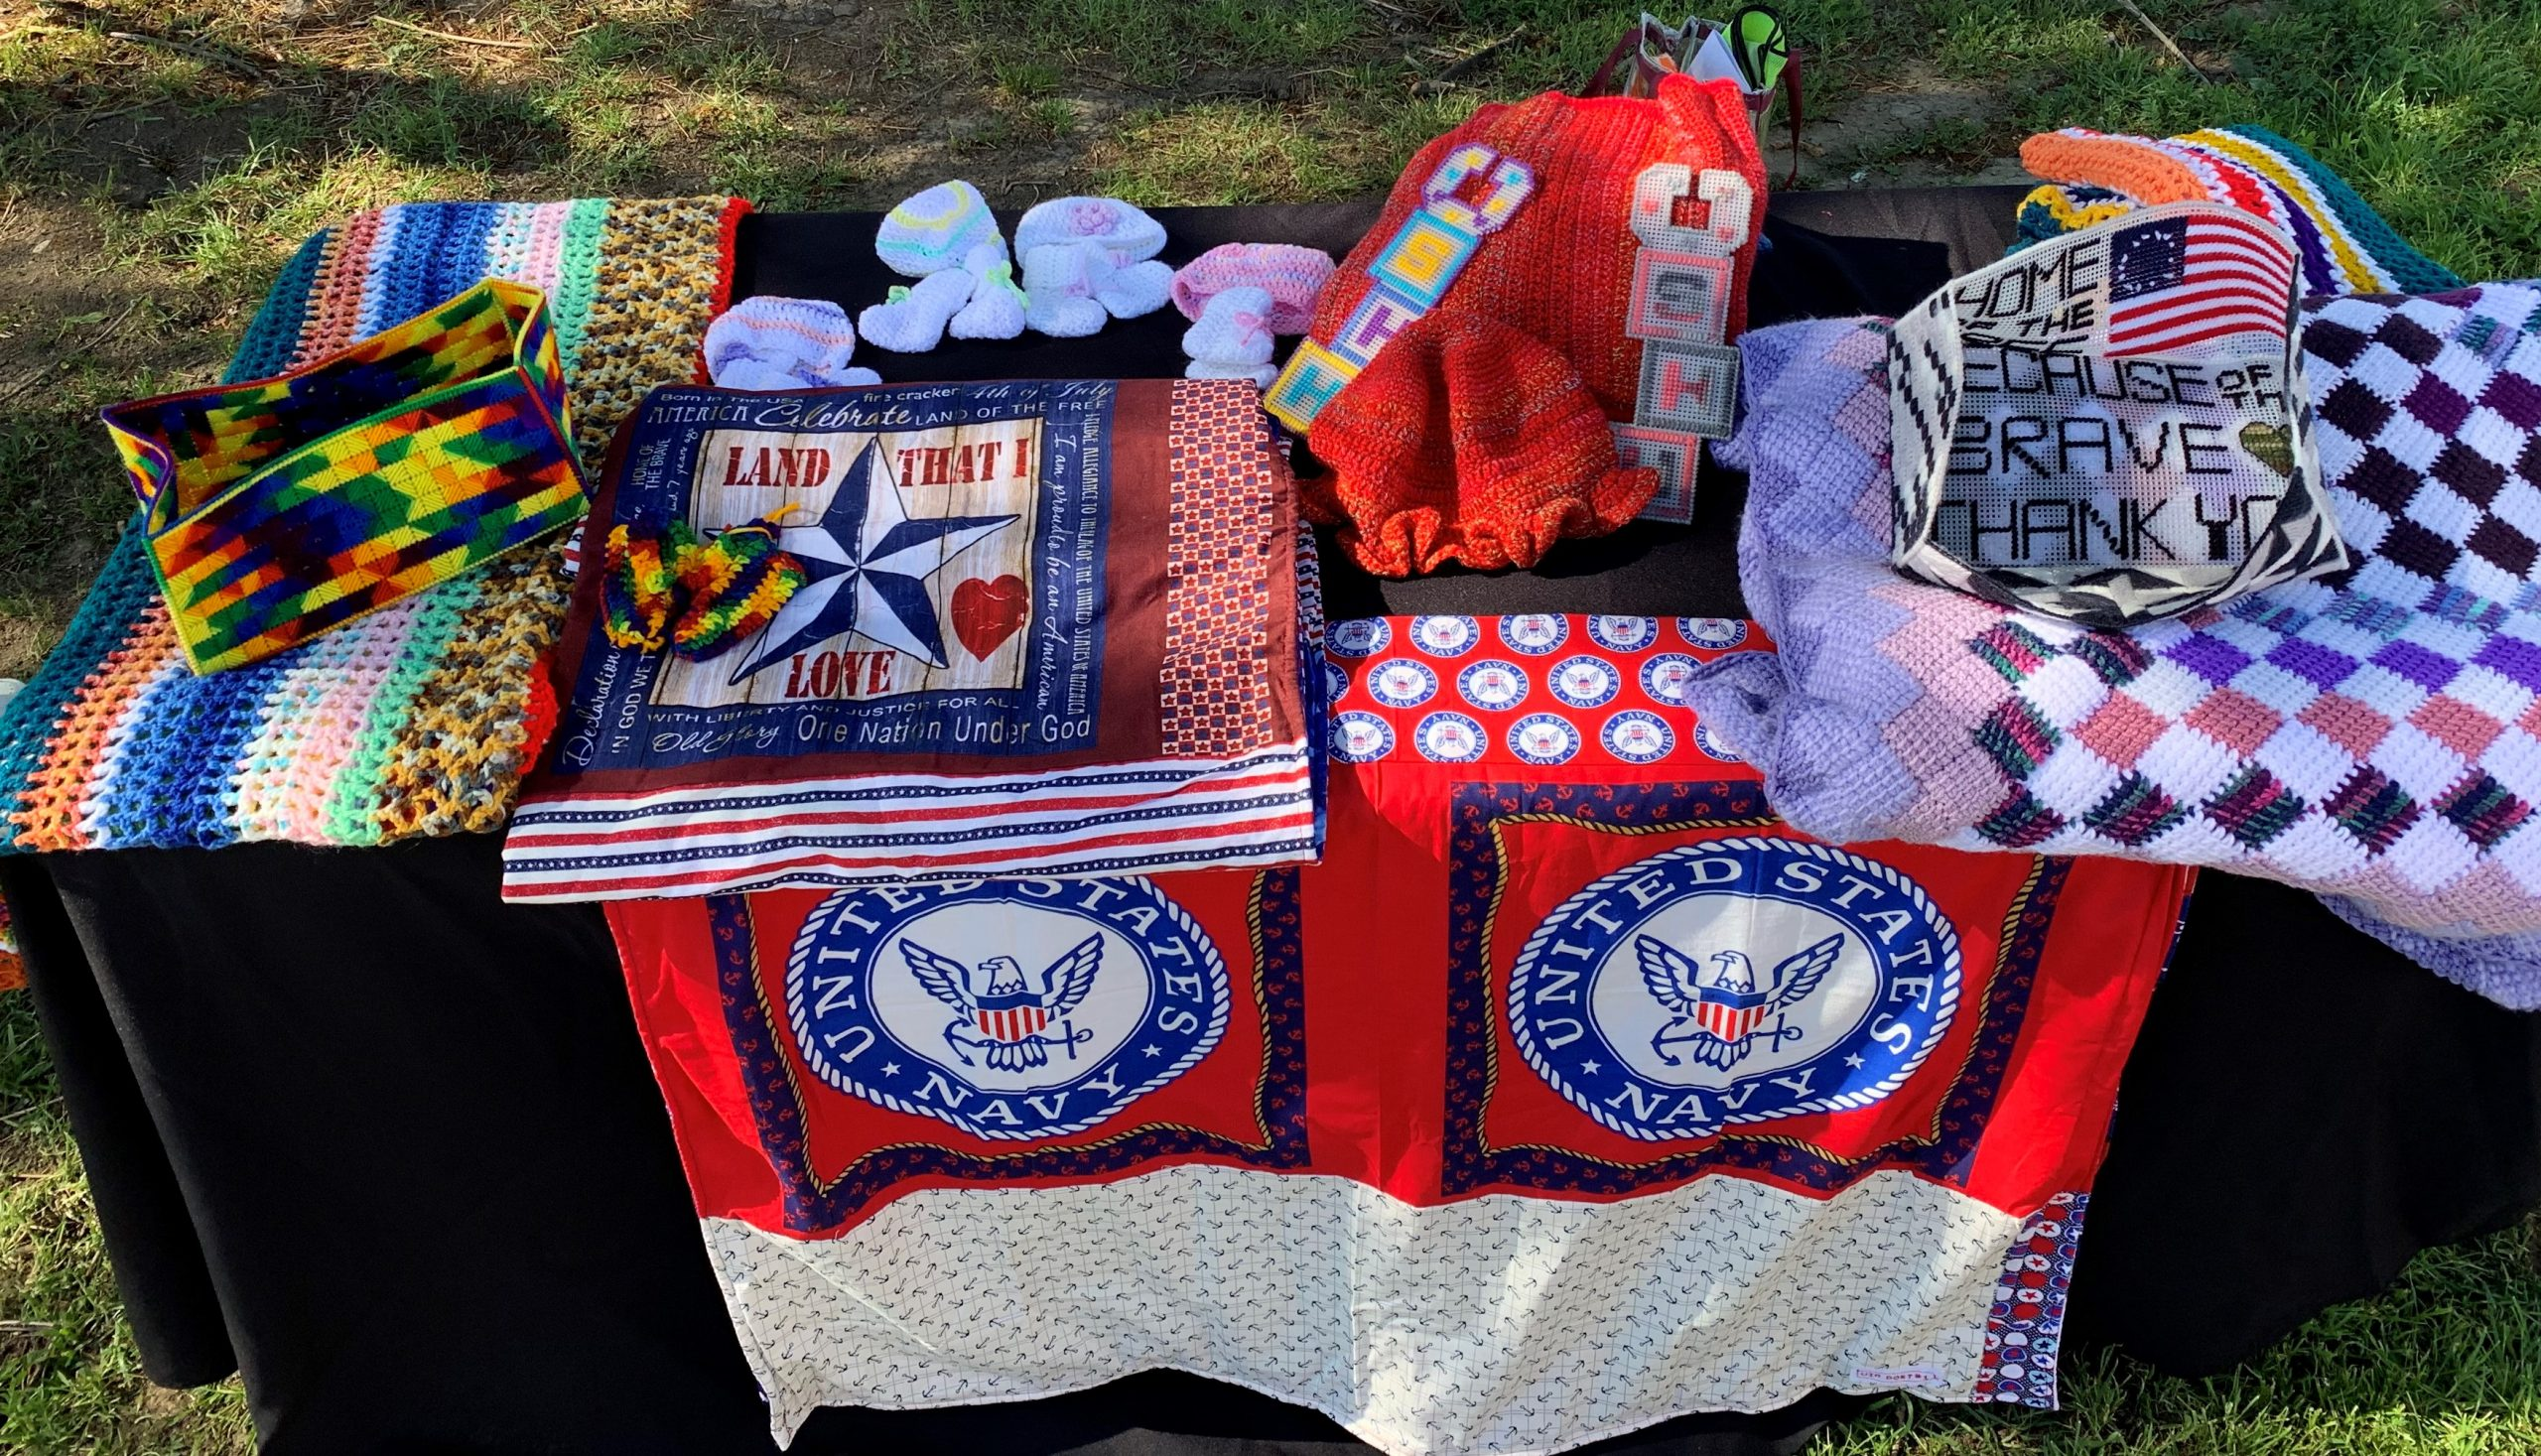 Table filled with hand-crafted clothing and blankets.